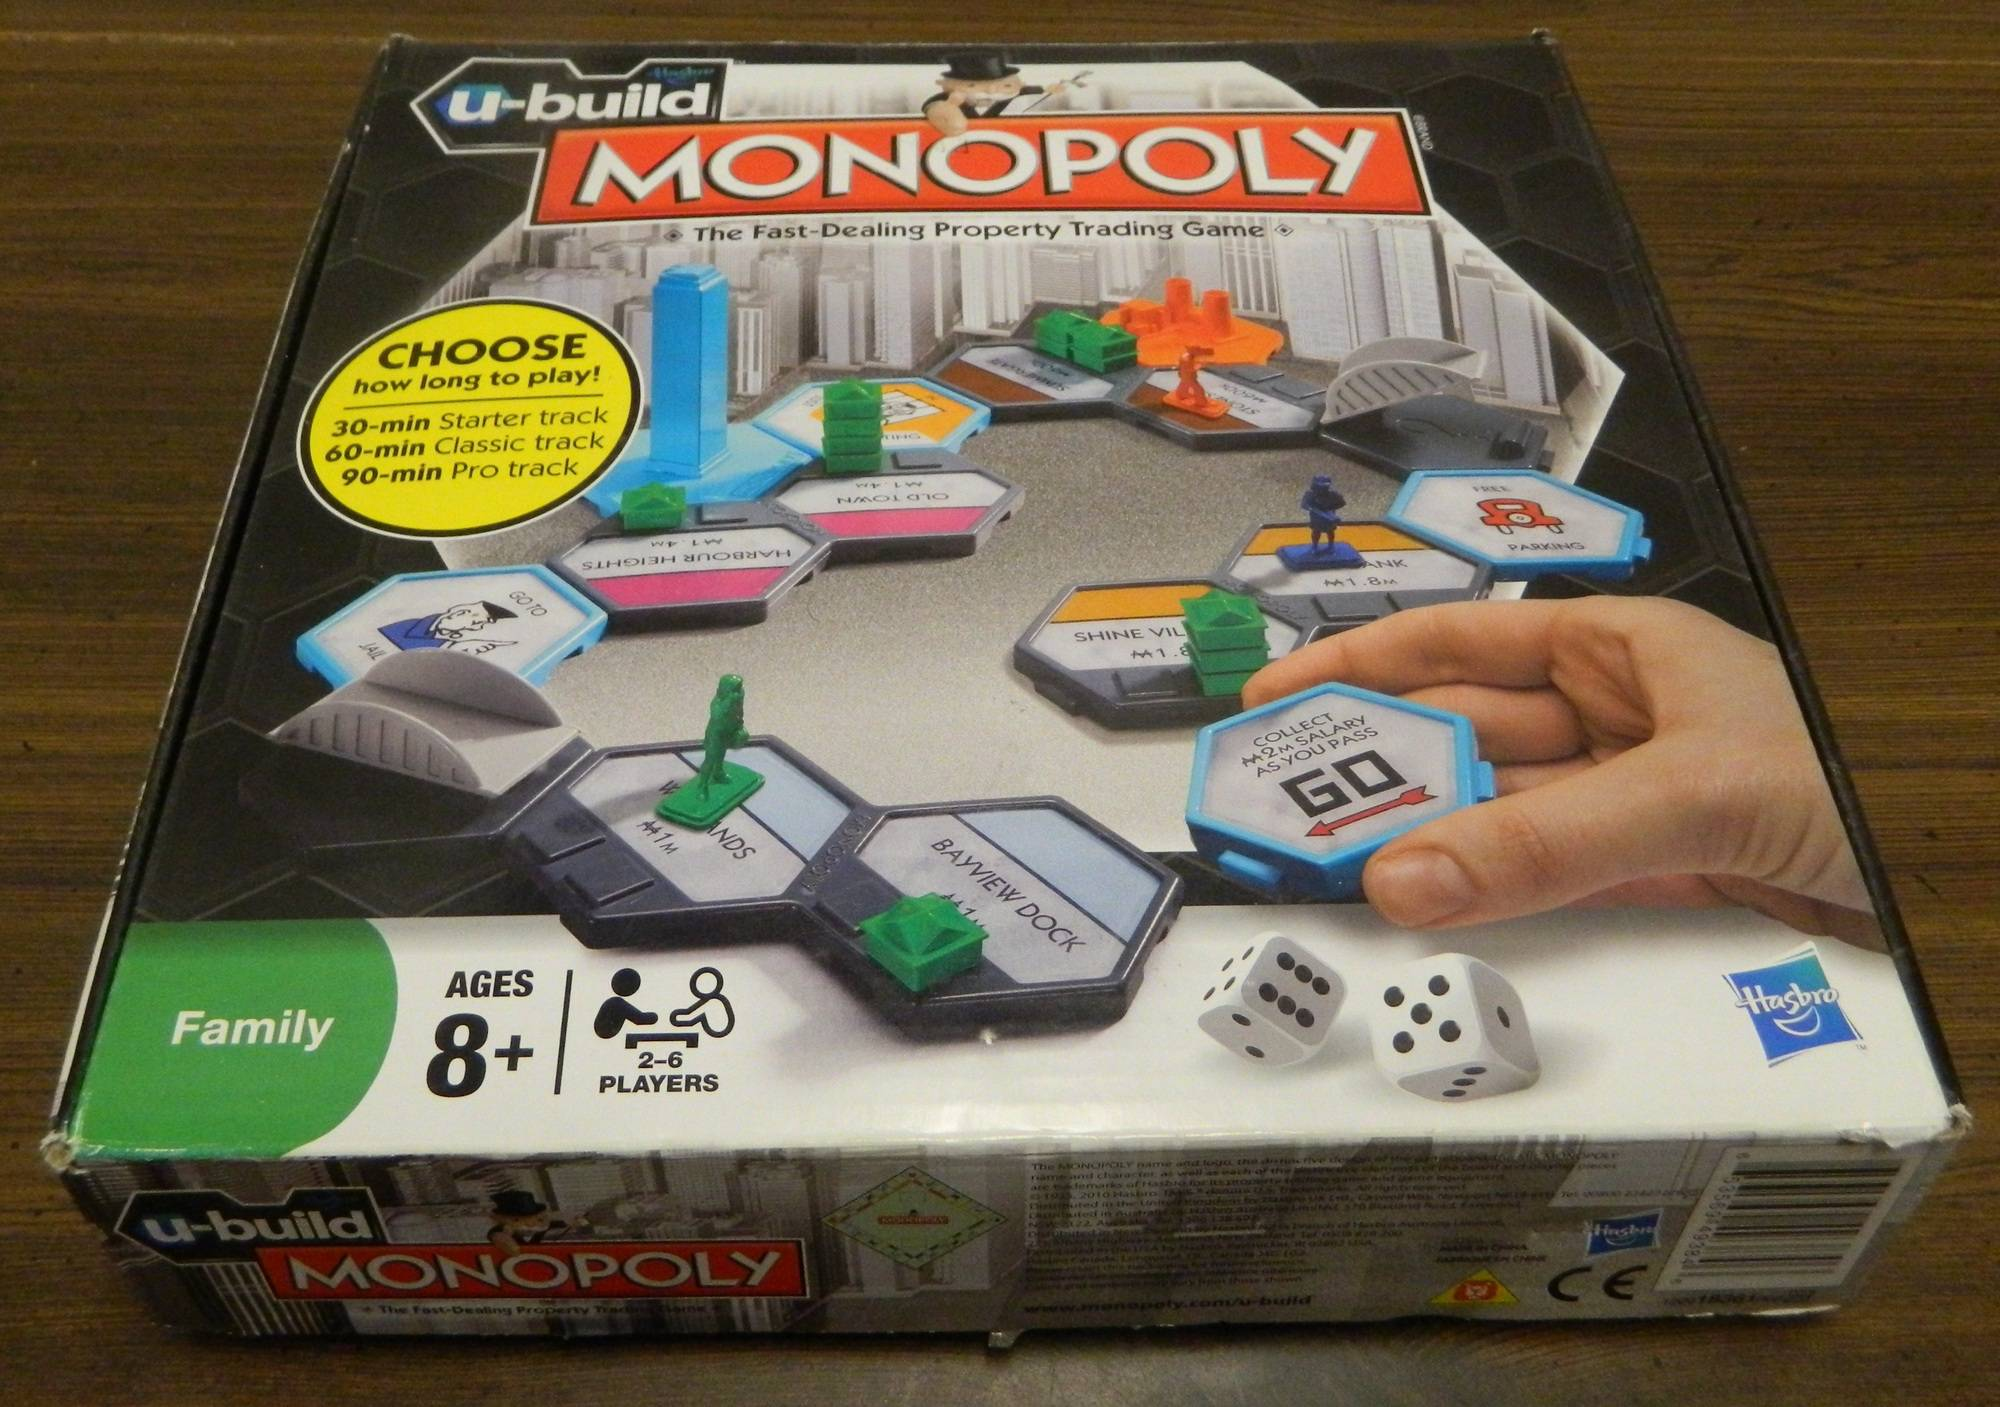 Box for U-Build Monopoly